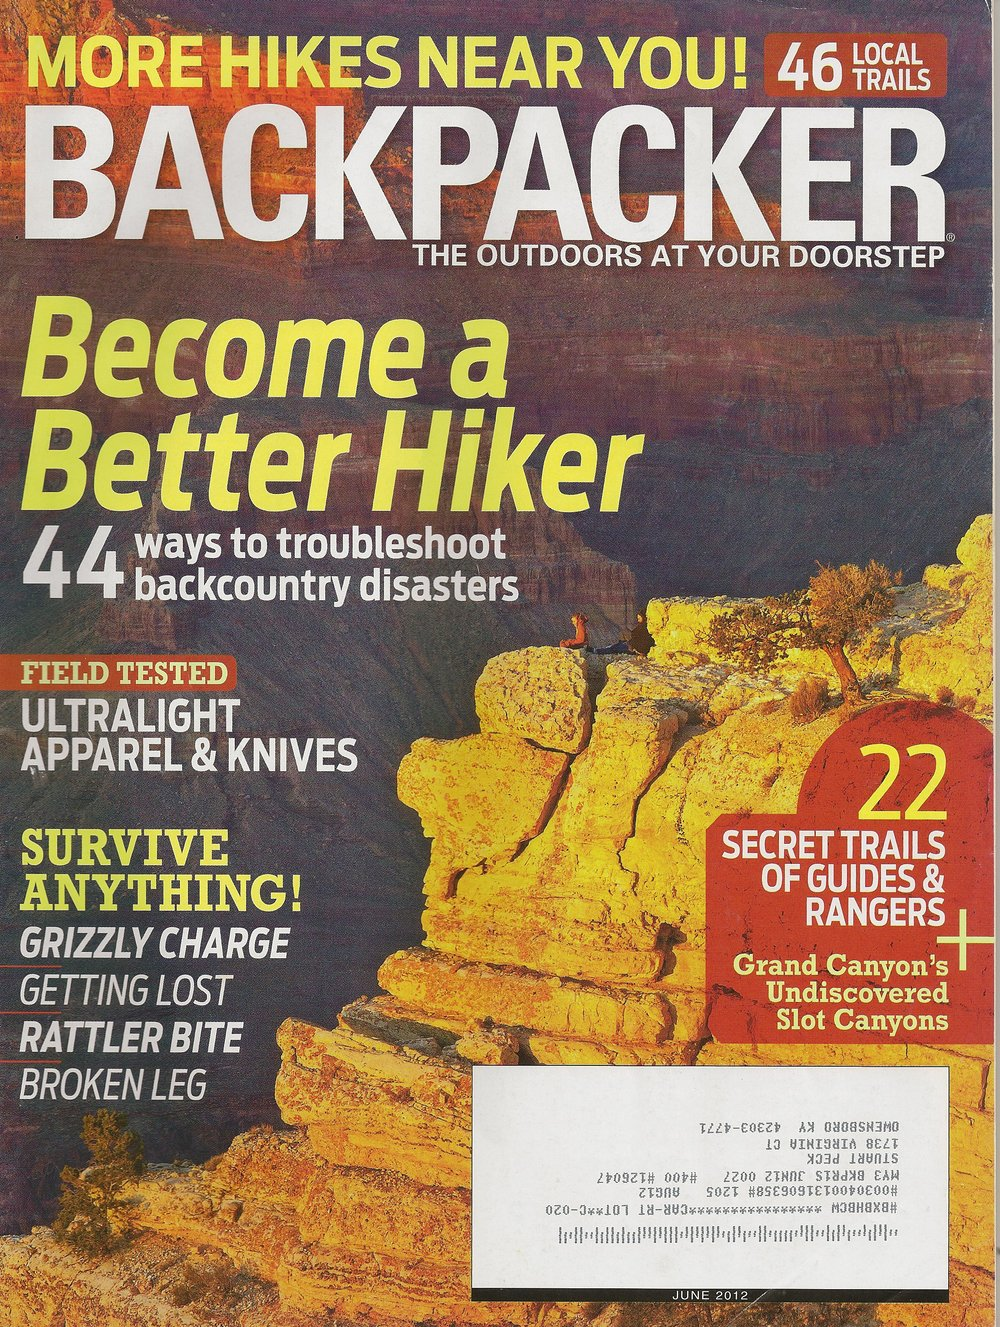 Two Lakes Loop BACKPACKER magazine - November 2011 Page 1 Page 2